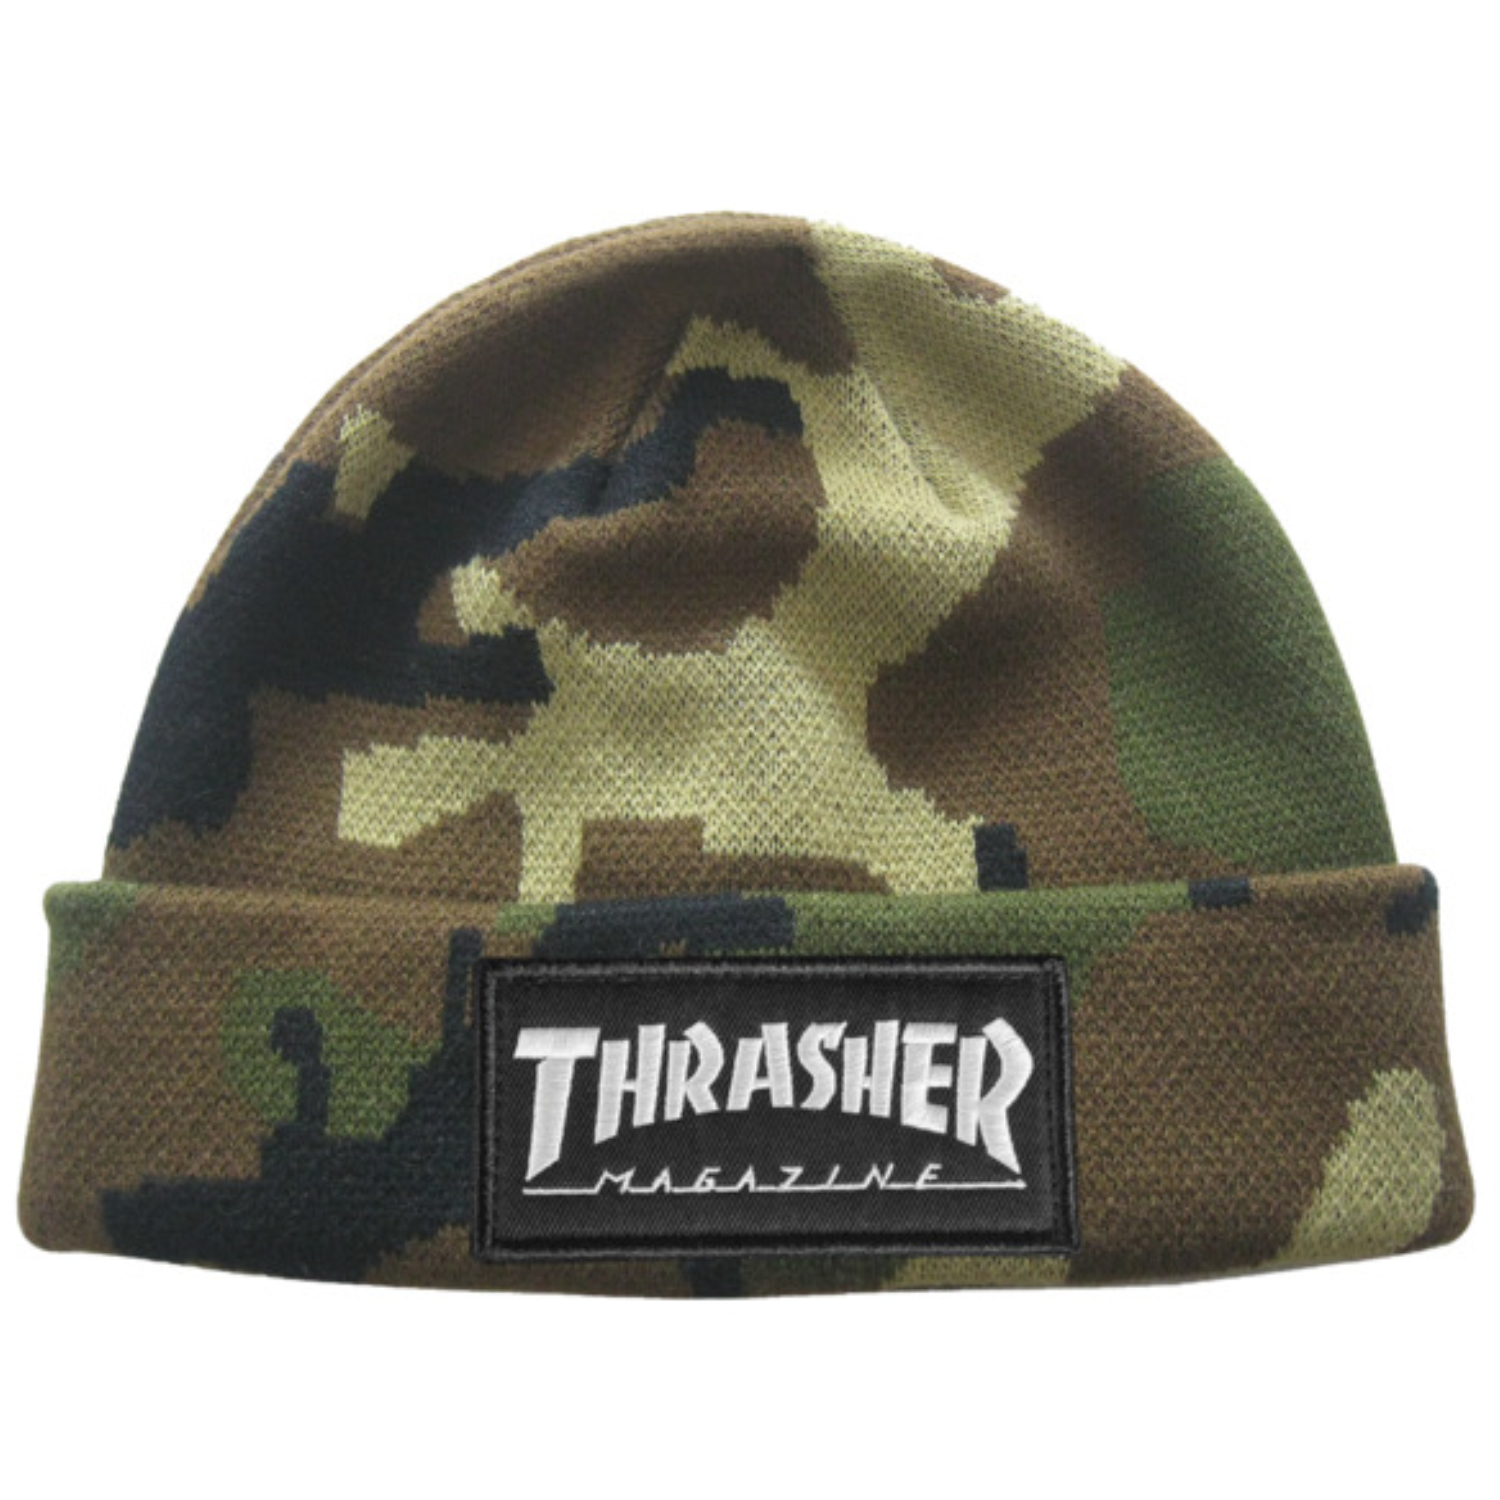 Chullo Thrasher - Logo Patch Camo